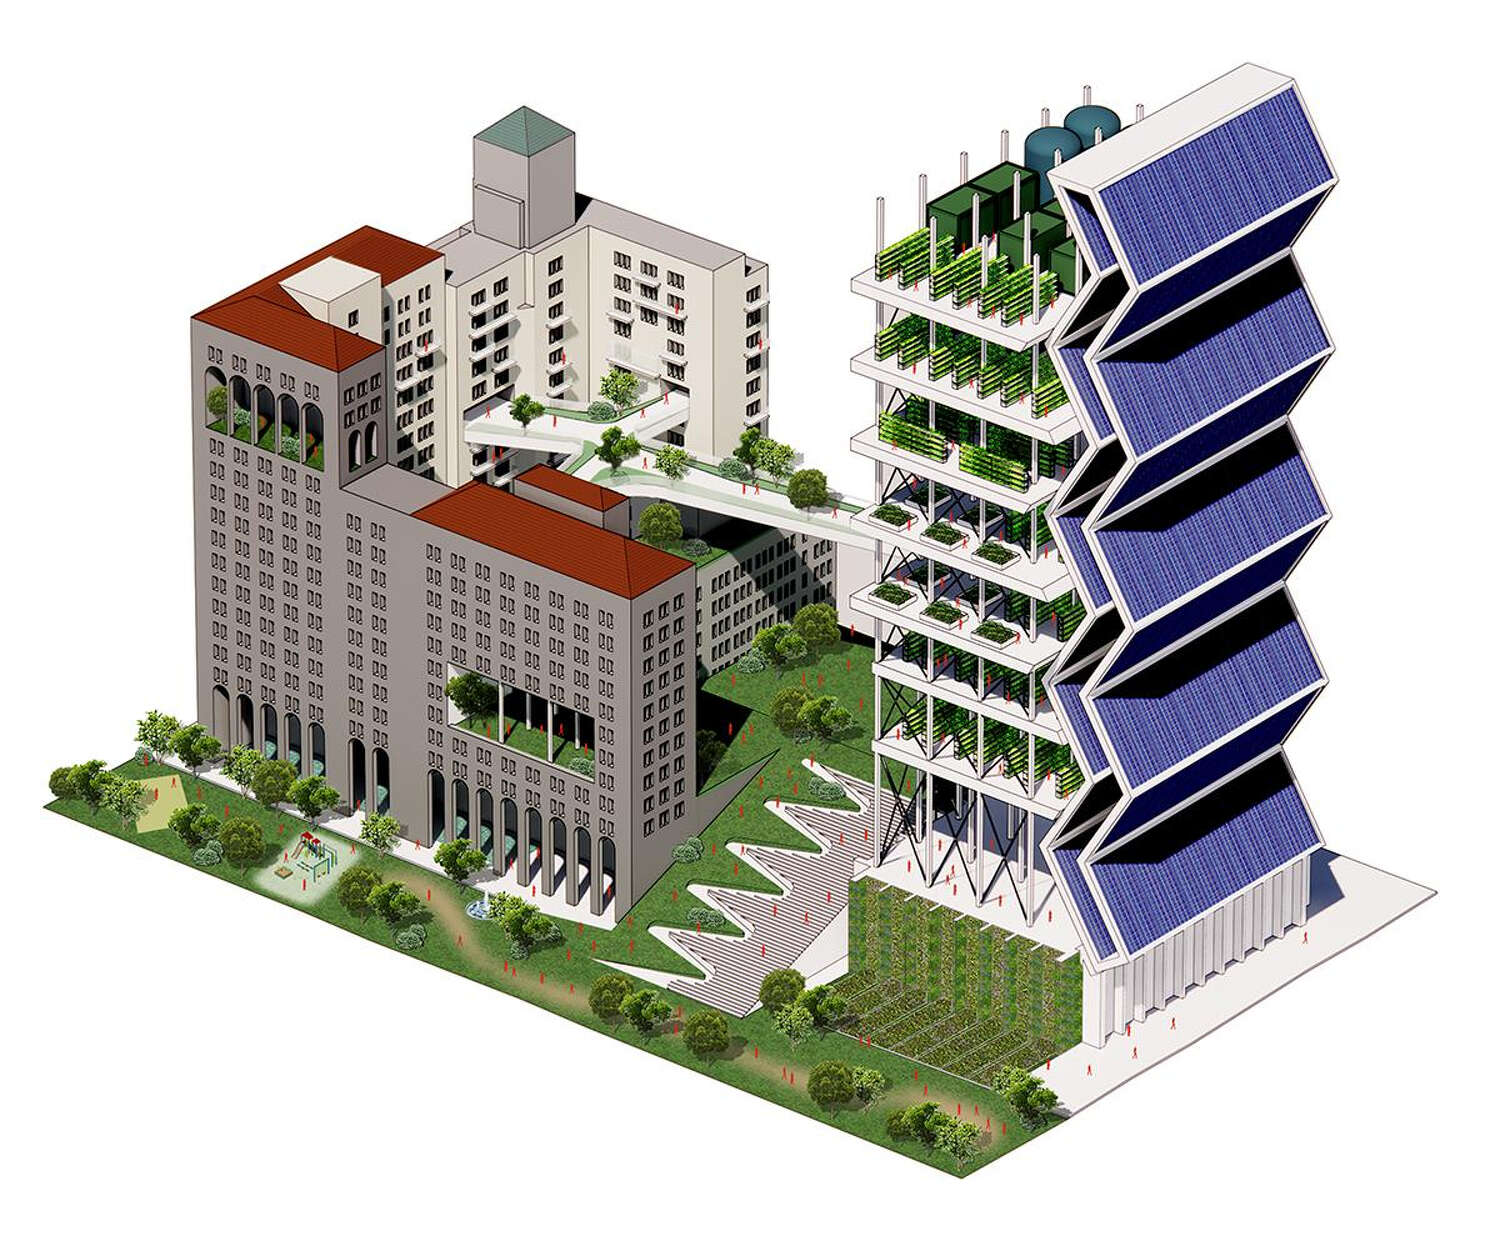 A rendering of the converted PG&E Building.